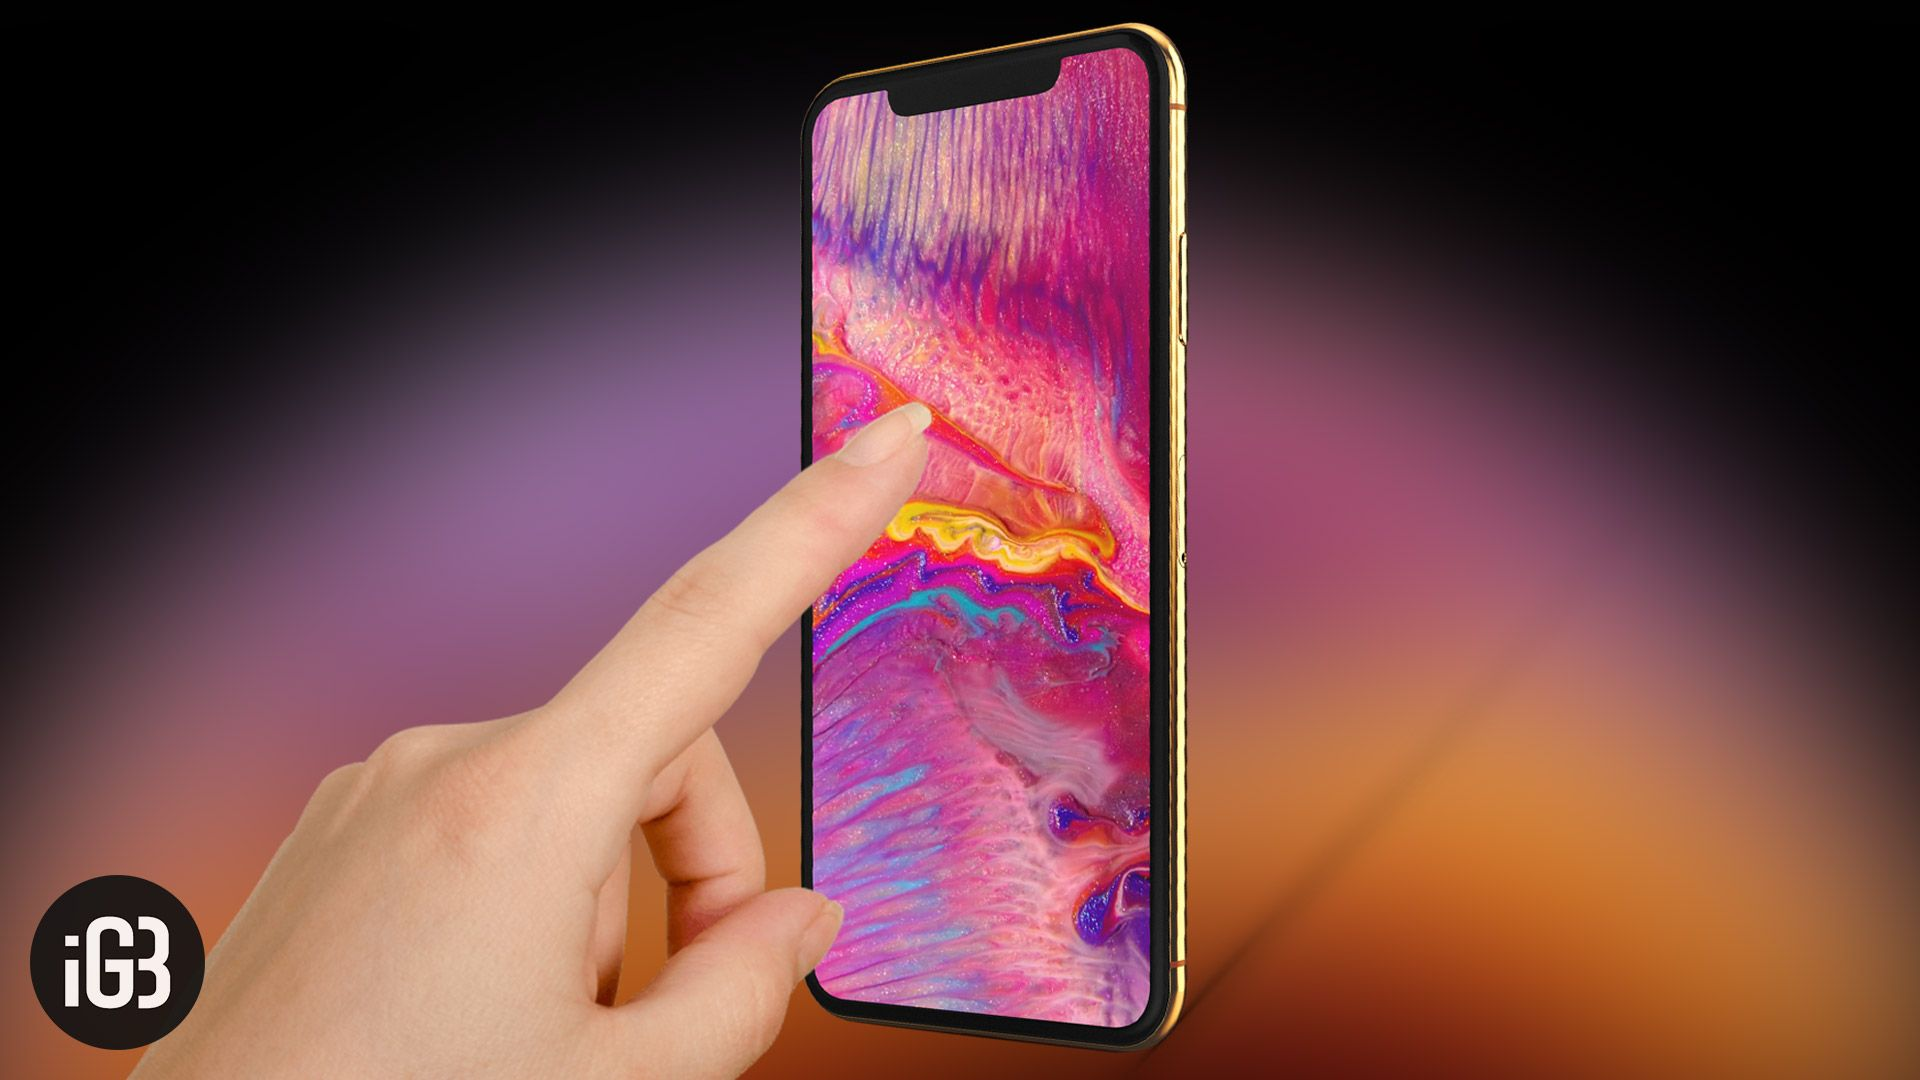 Fun Images Iphone Xs Max Live Wallpaper 4k Download